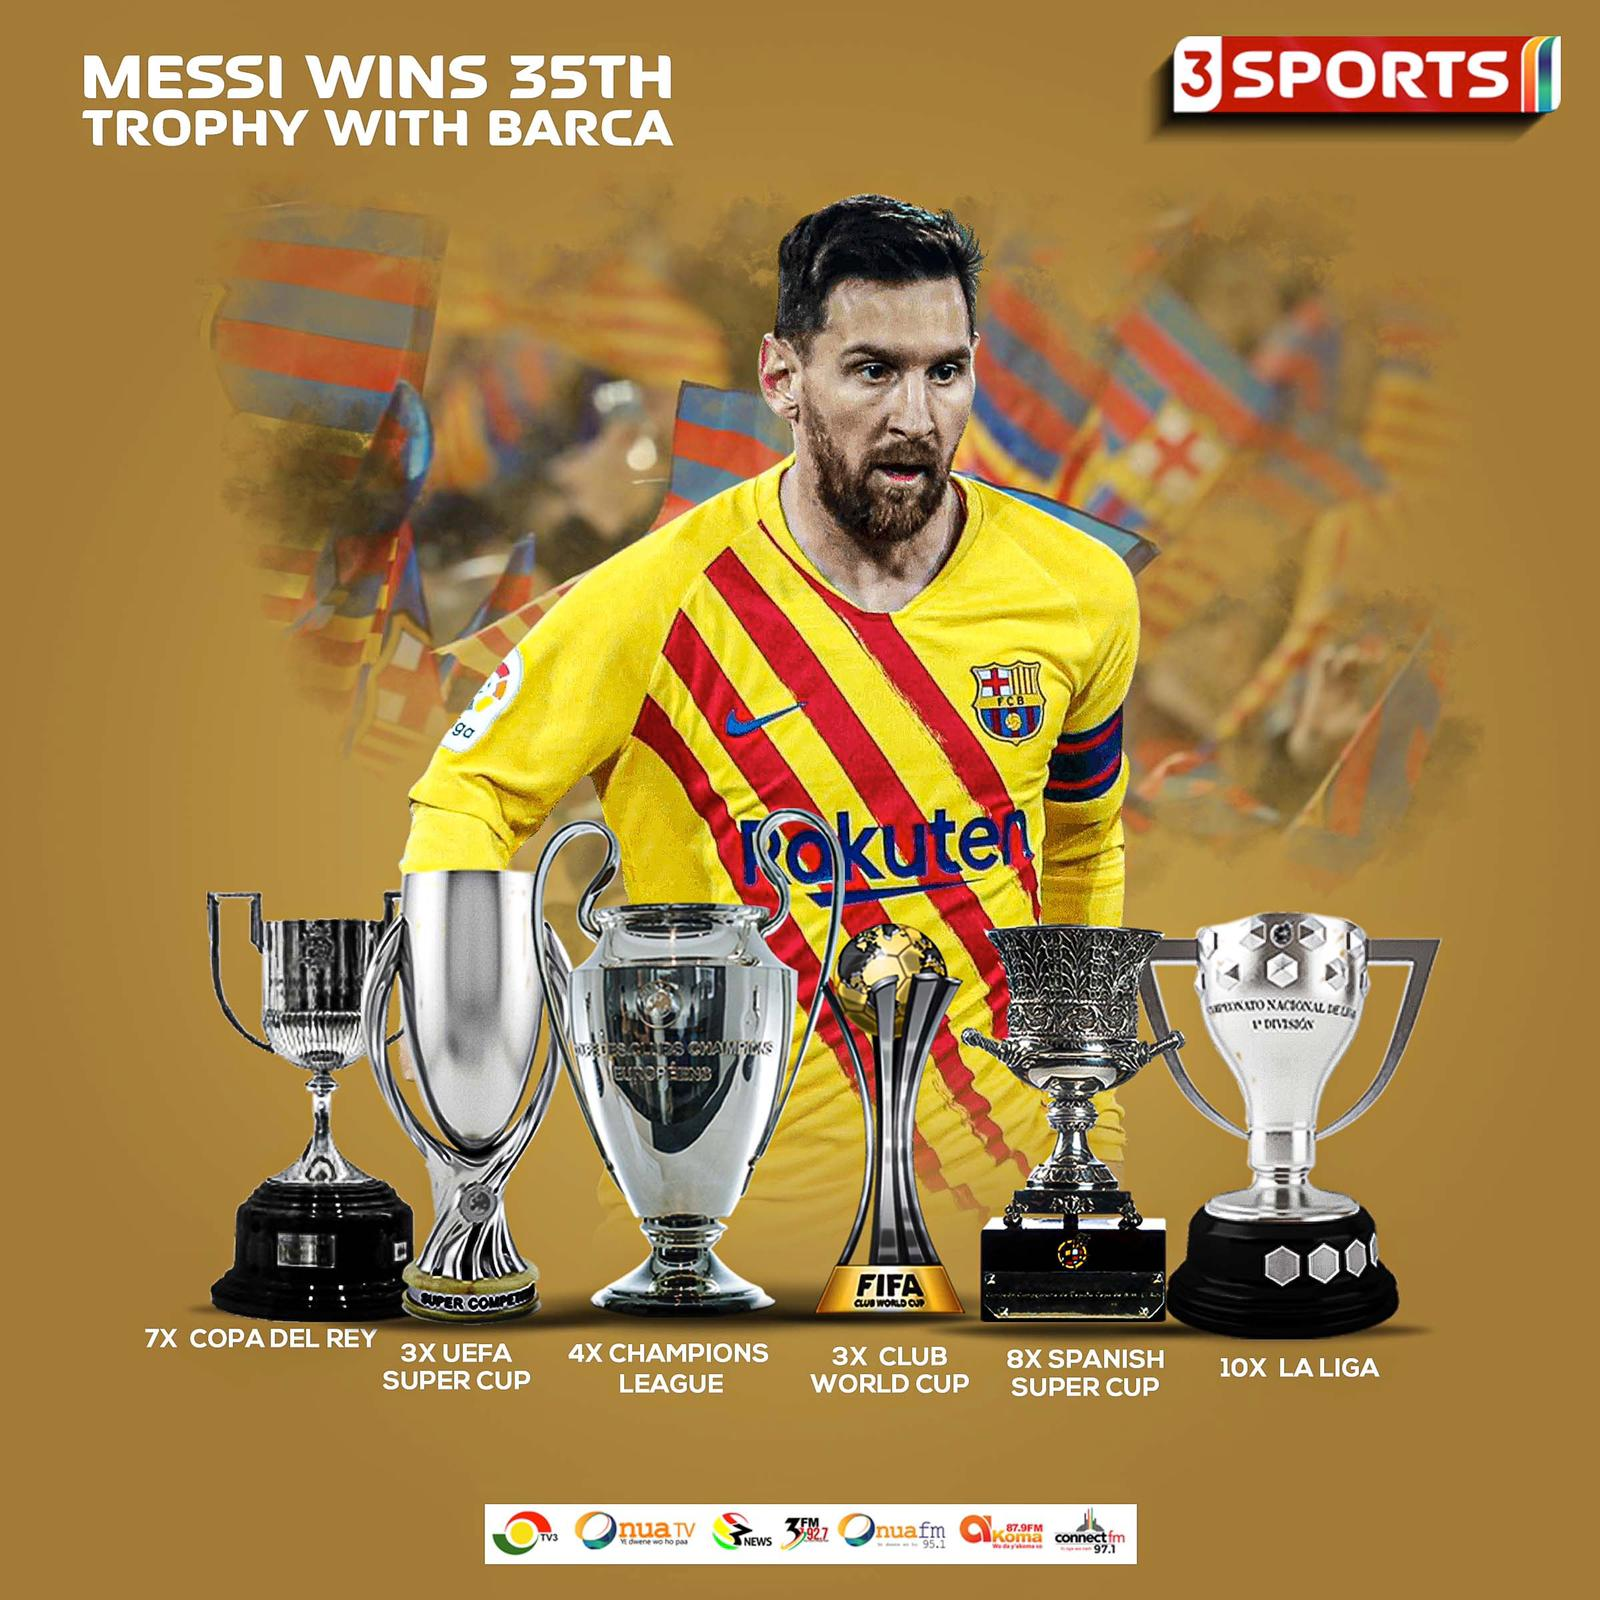 Messi wins 35th trophy at Barcelona; the breakdown